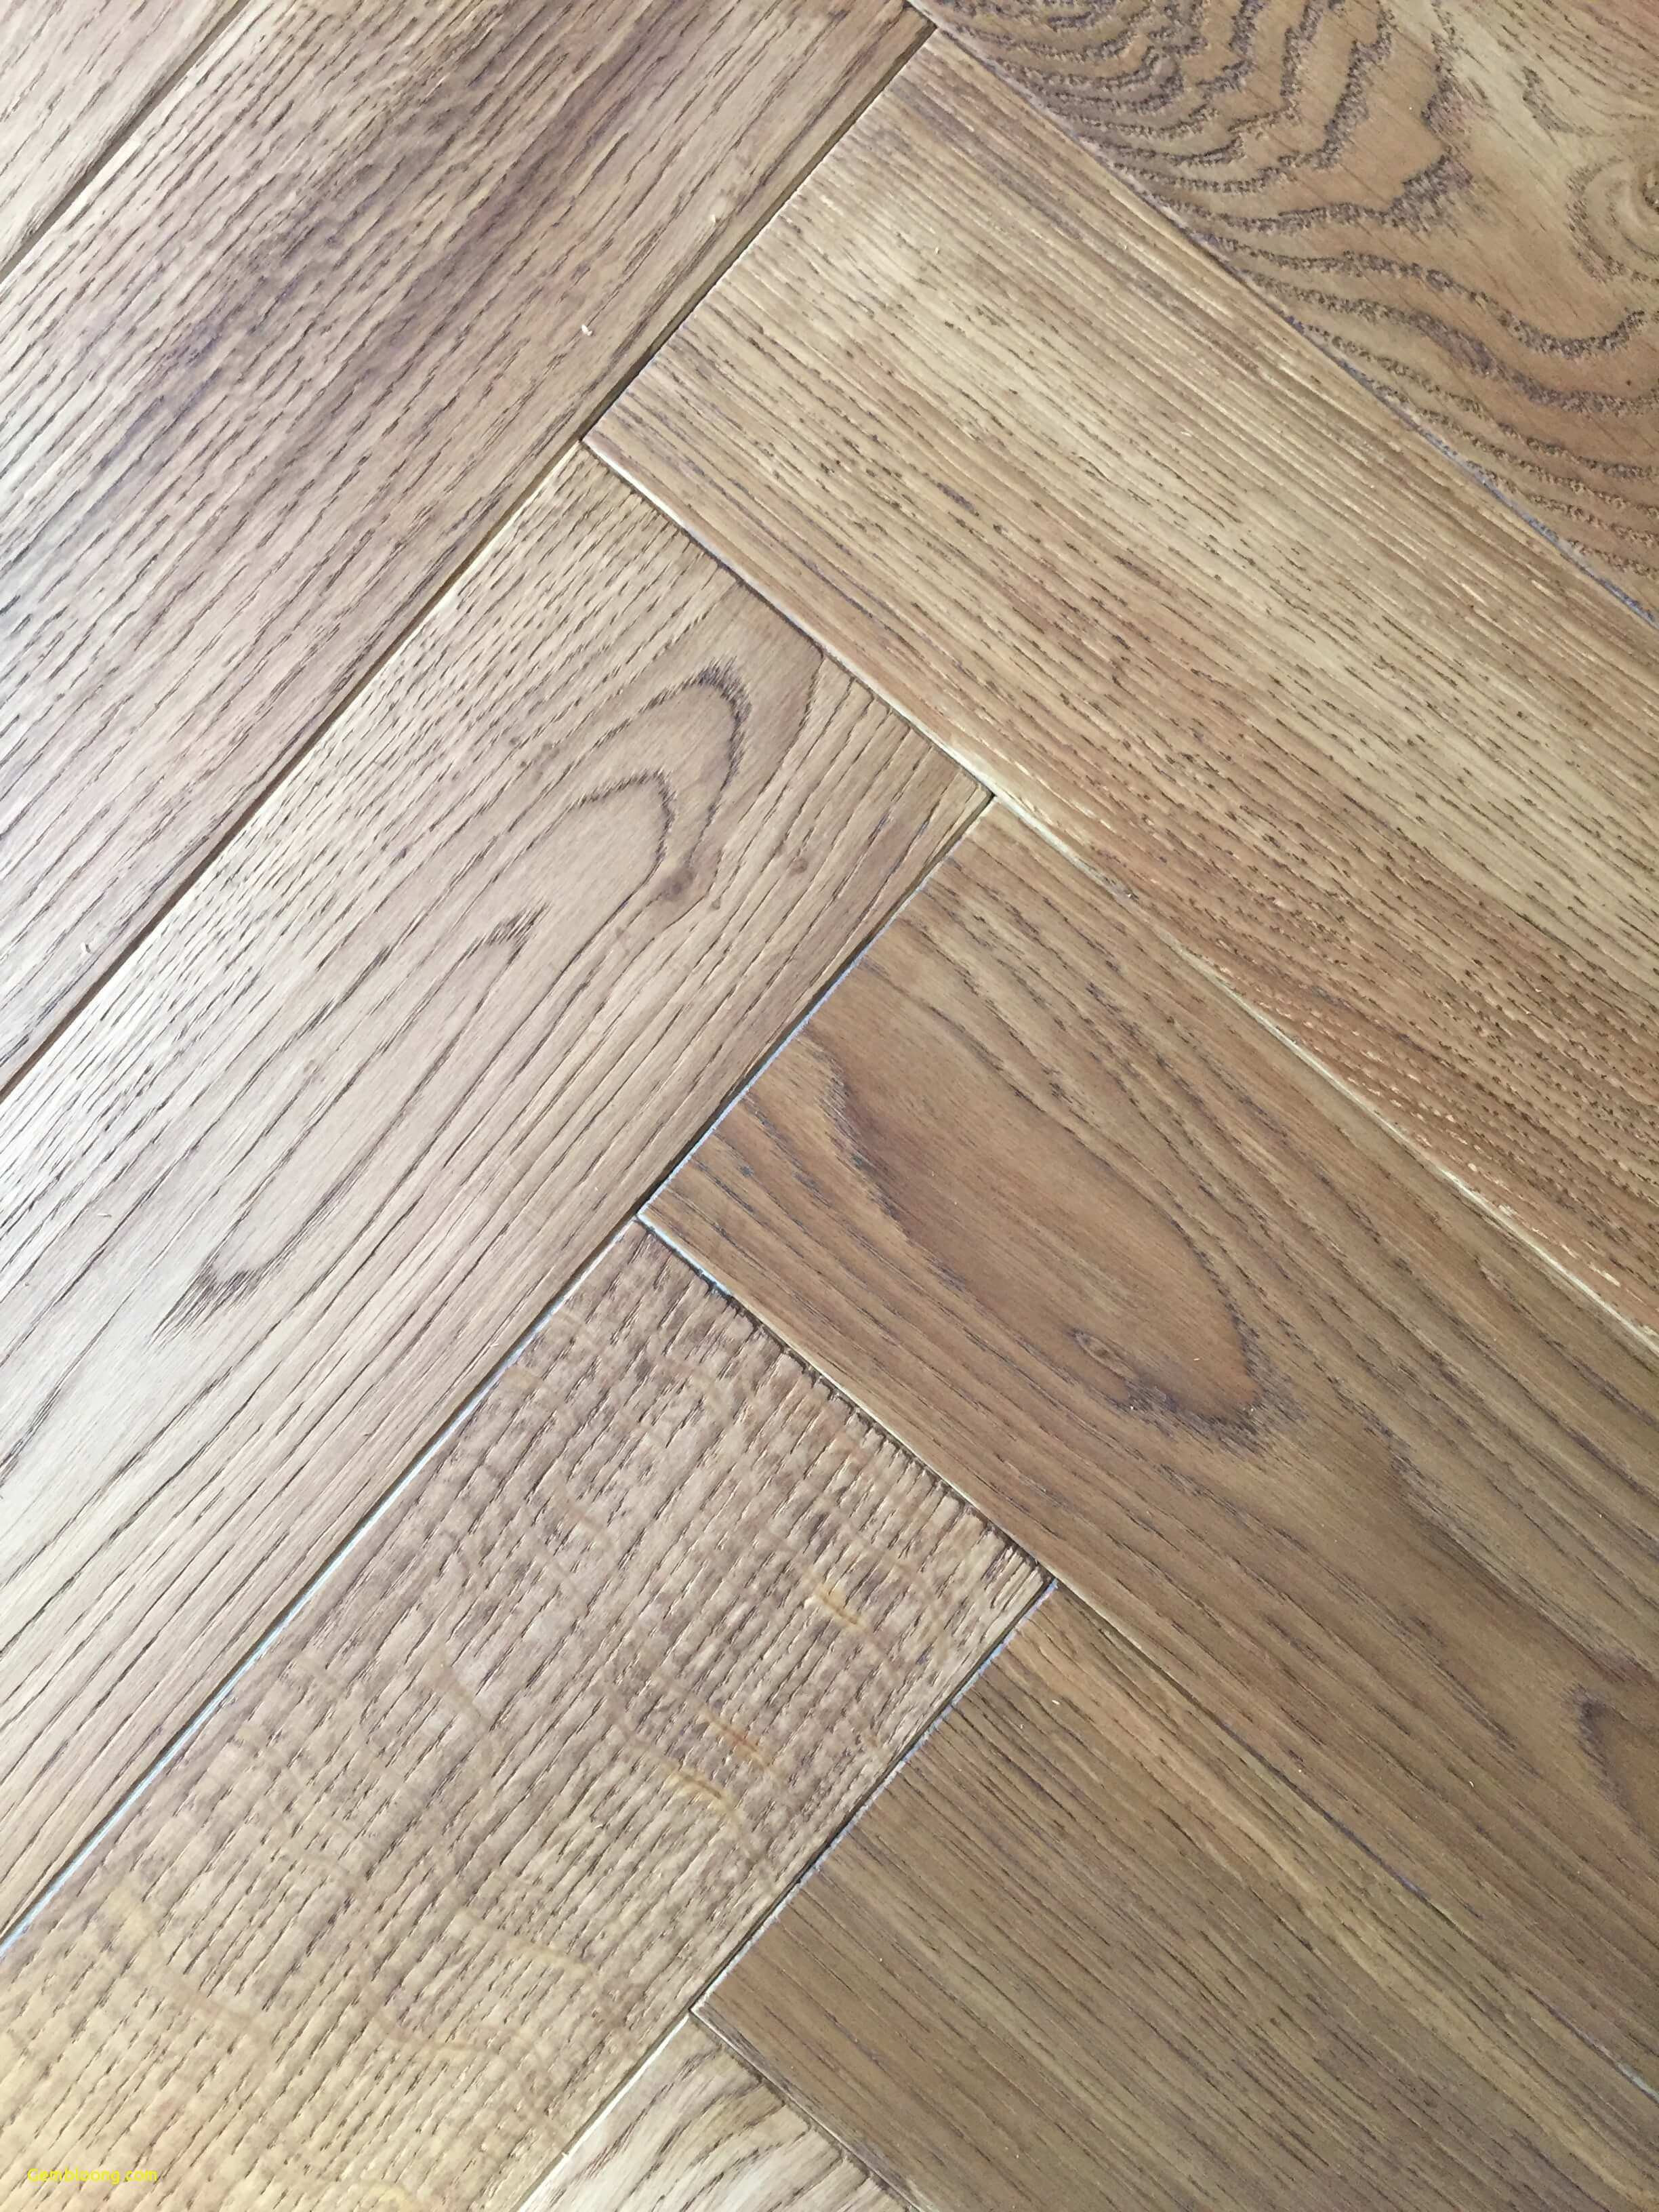 hardwood floors next to tile of wood for floors facesinnature intended for ceramic tile wood floor new decorating an open floor plan living room awesome design plan 0d